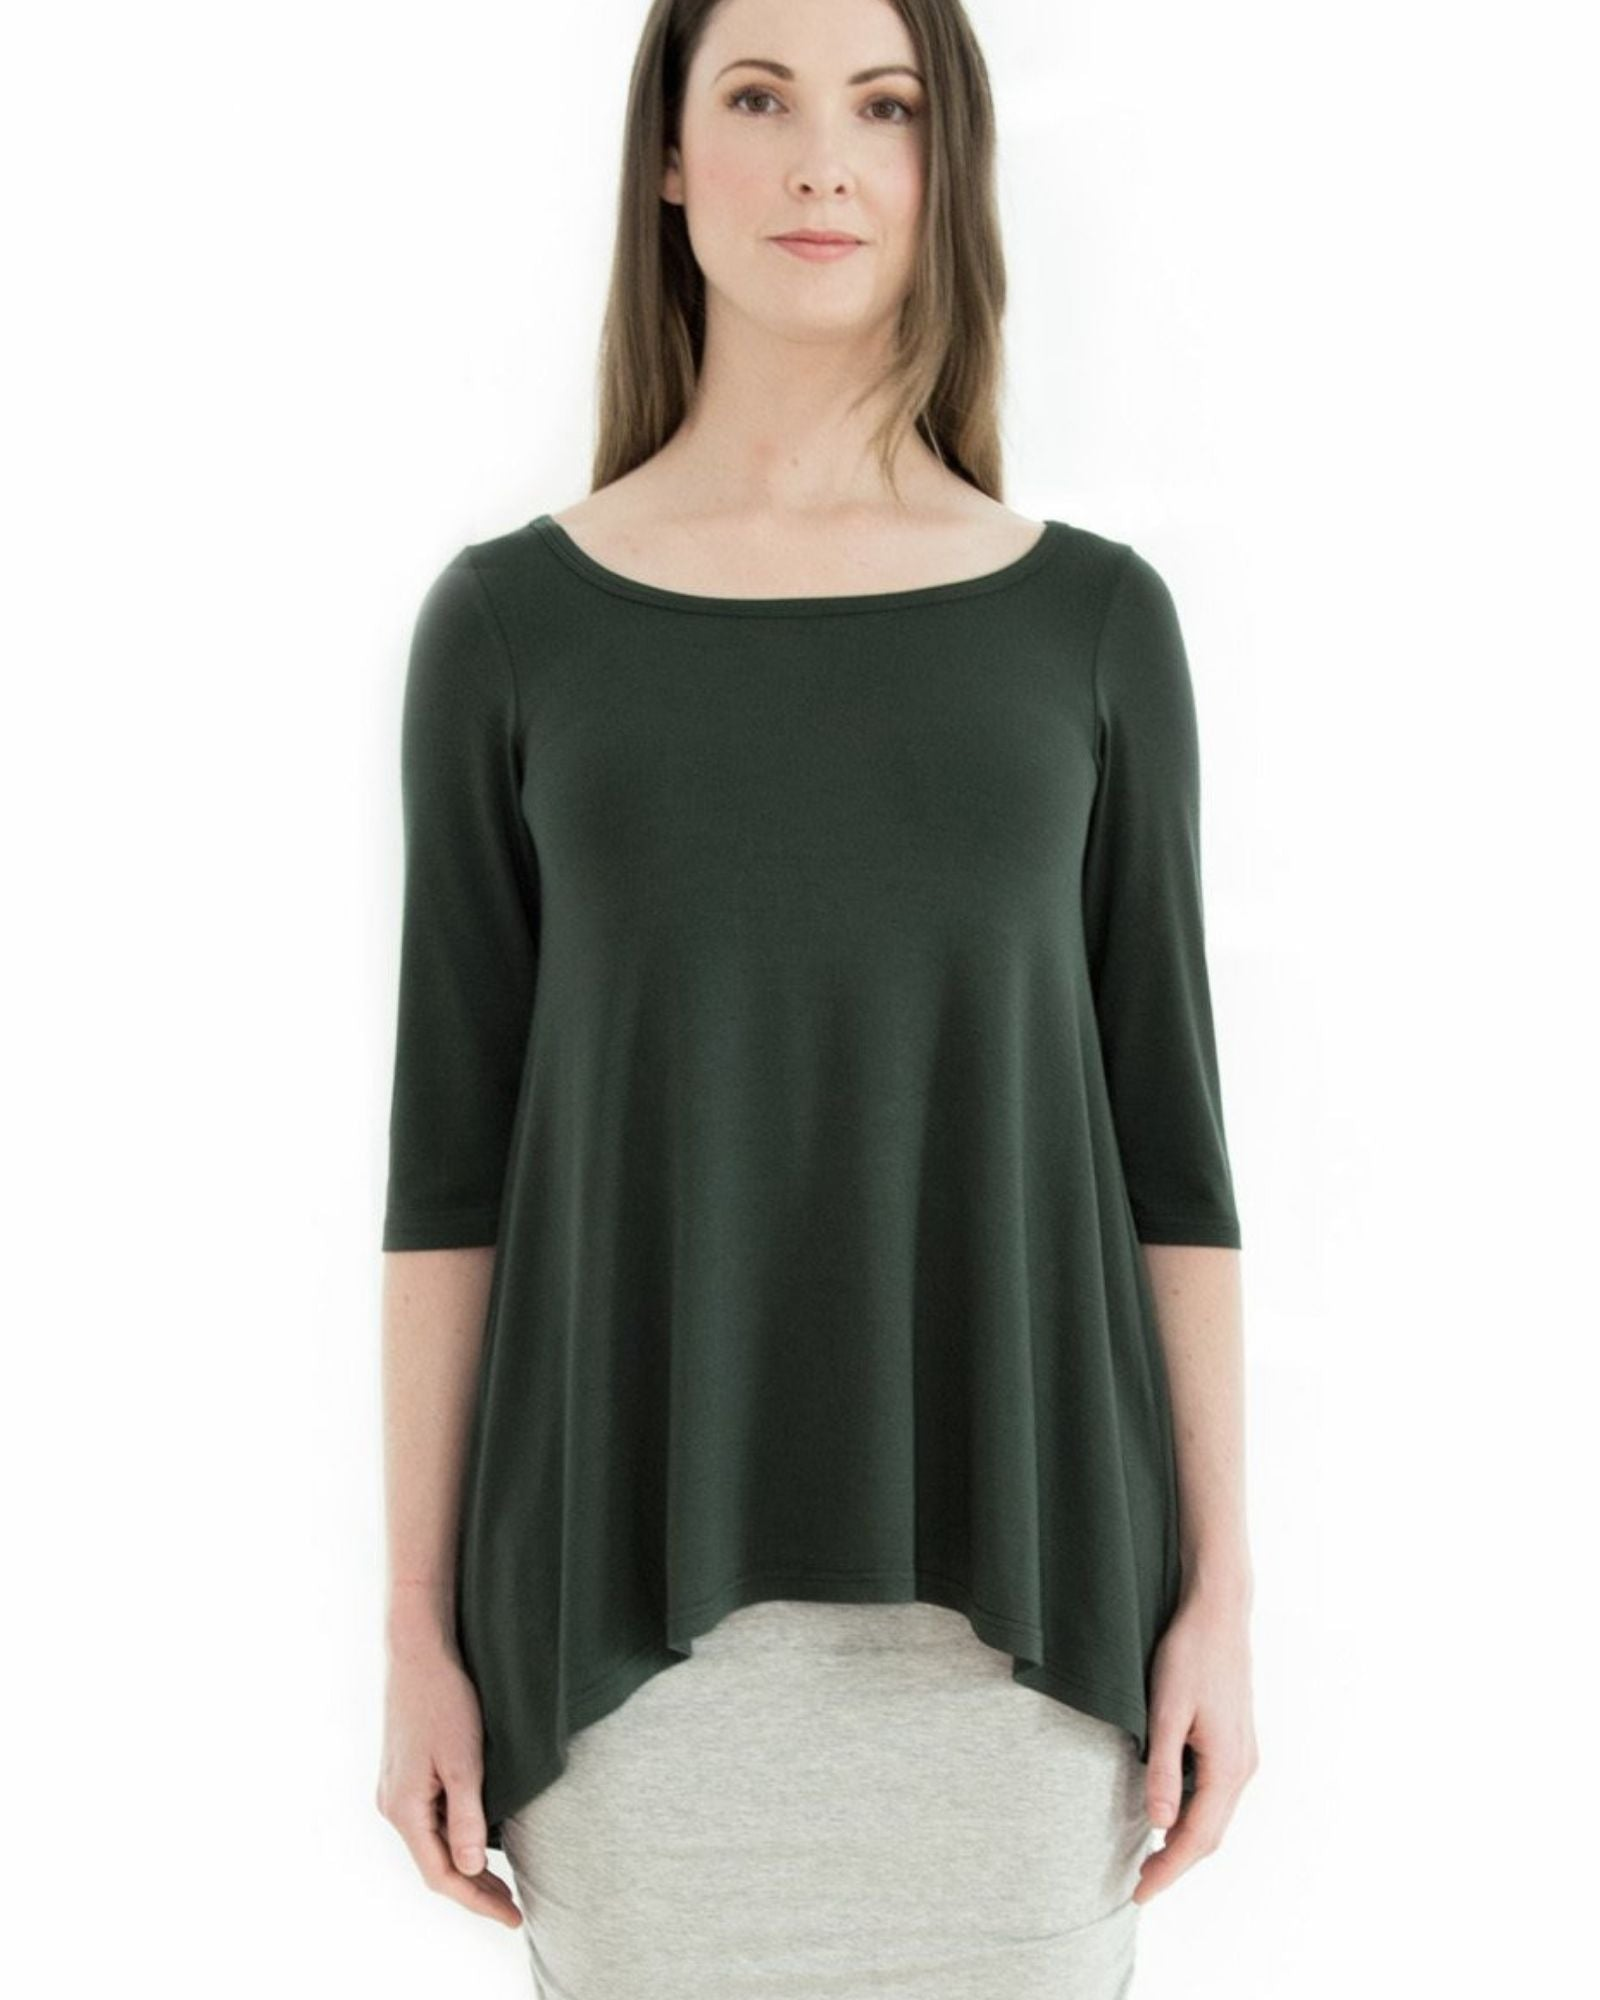 Bamboo High Low Hem Top - Forest Green- Size 12-22